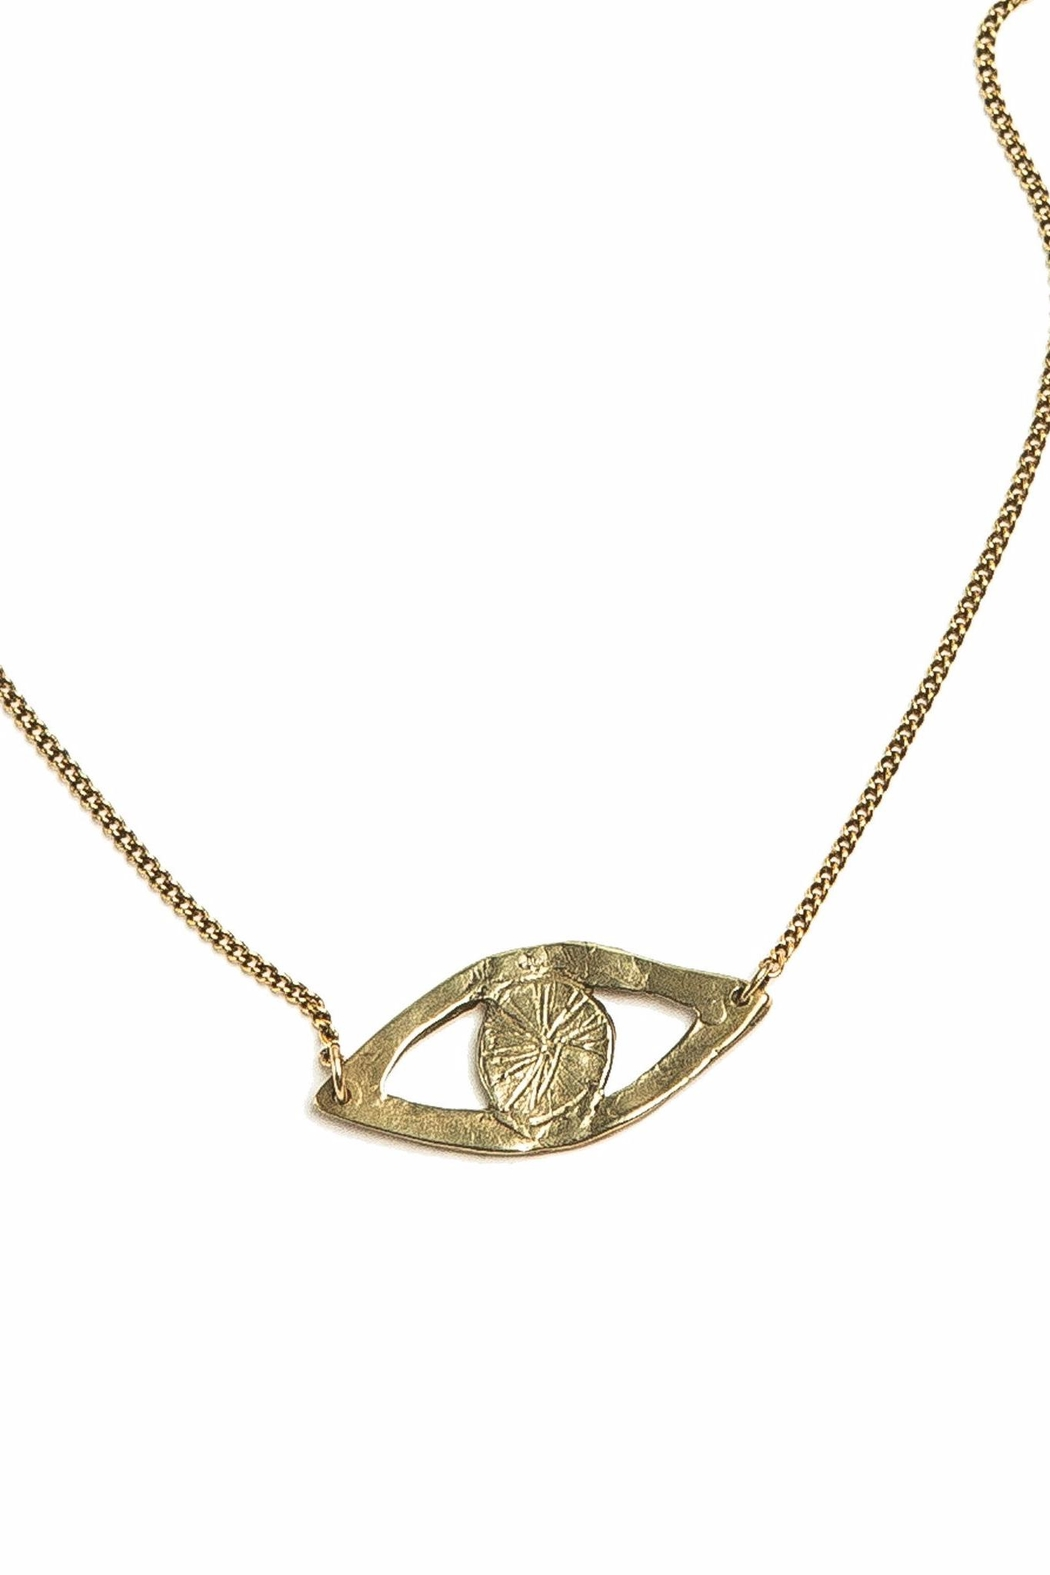 Tilly Doro Third Eye Necklace - Main Image